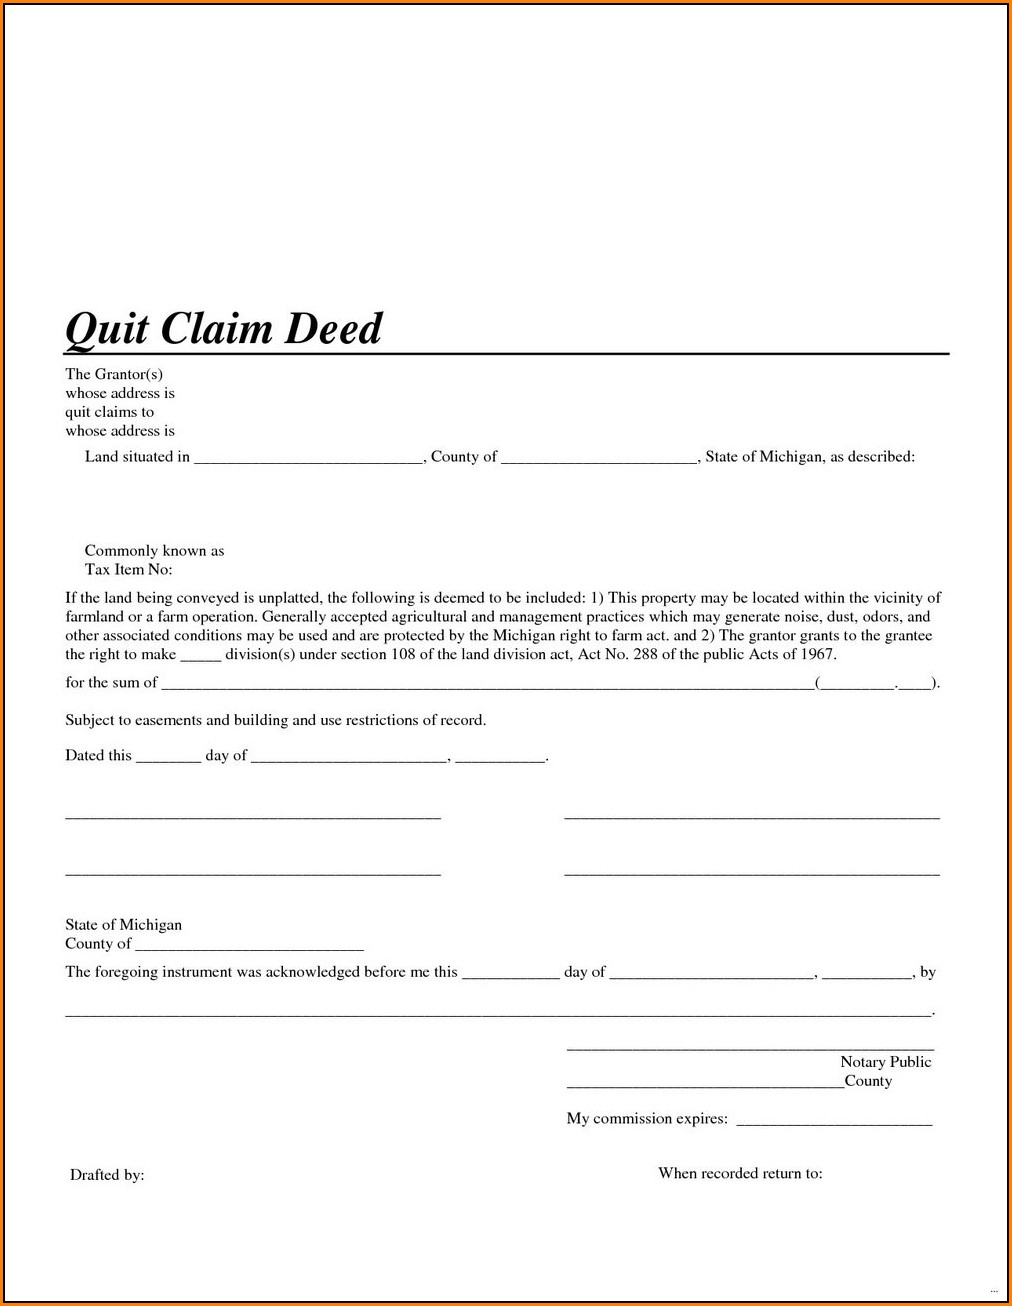 Quick Claim Deed Form Michigan